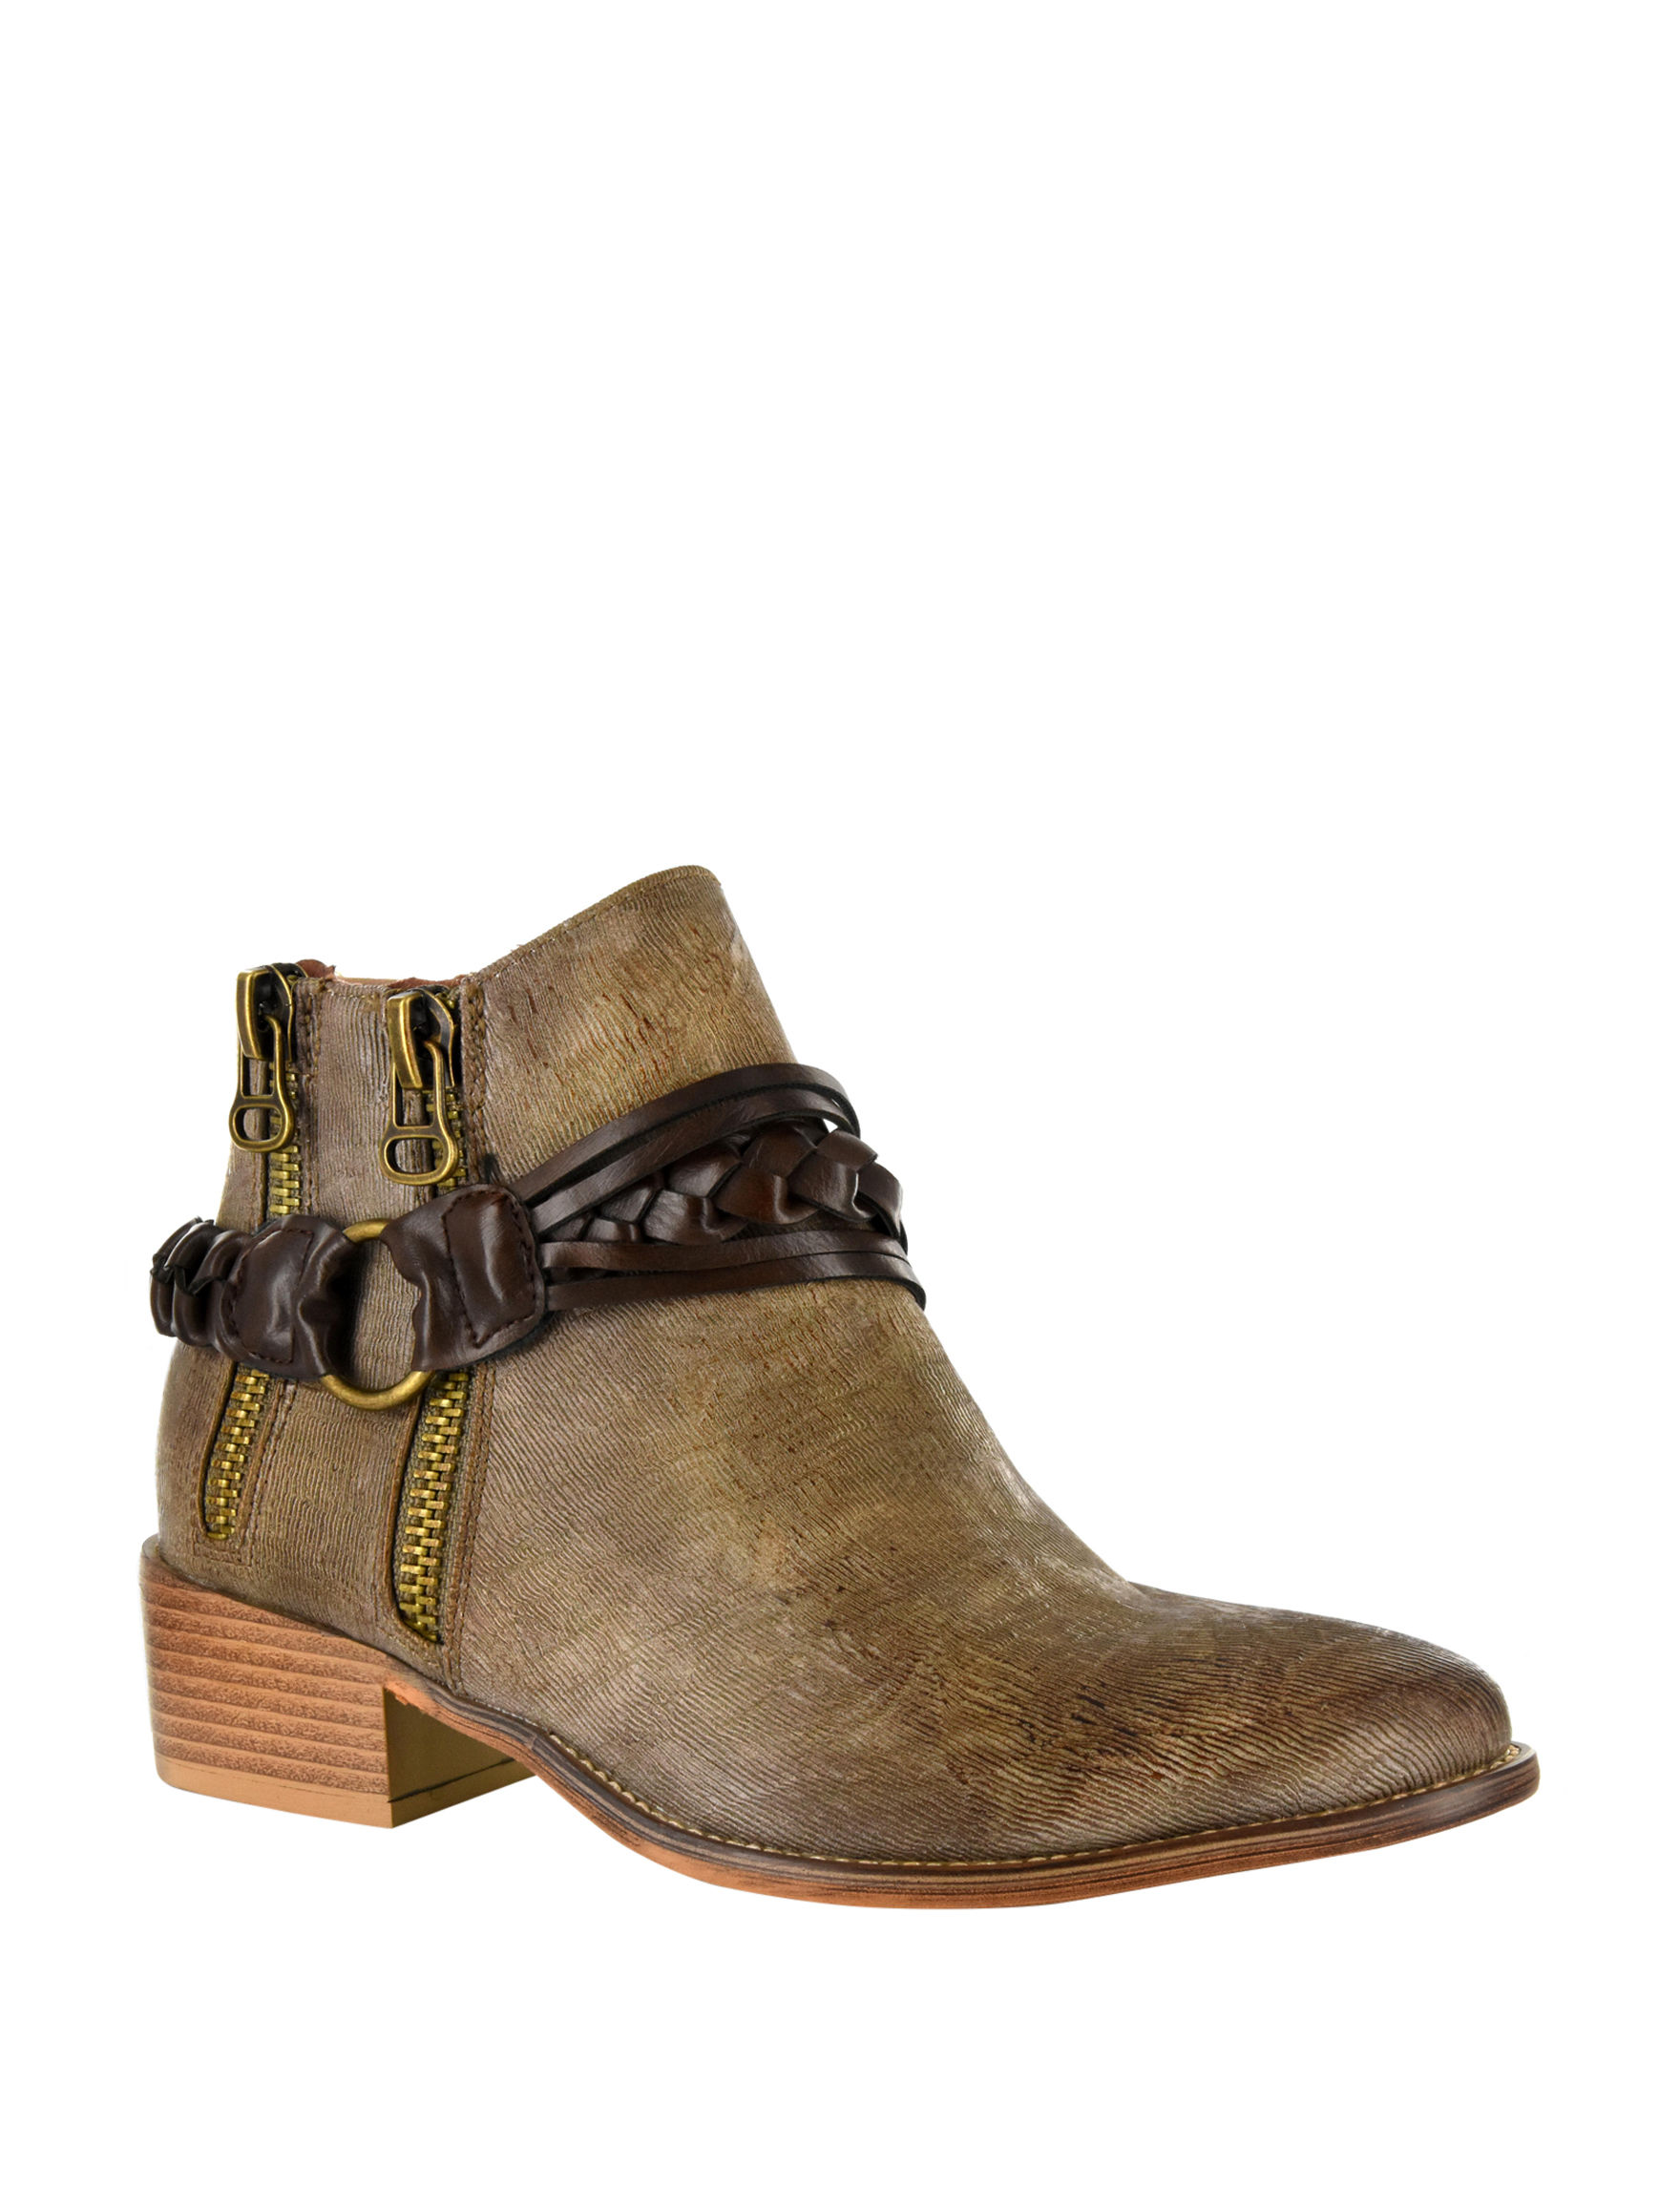 Corkys Beige Ankle Boots & Booties